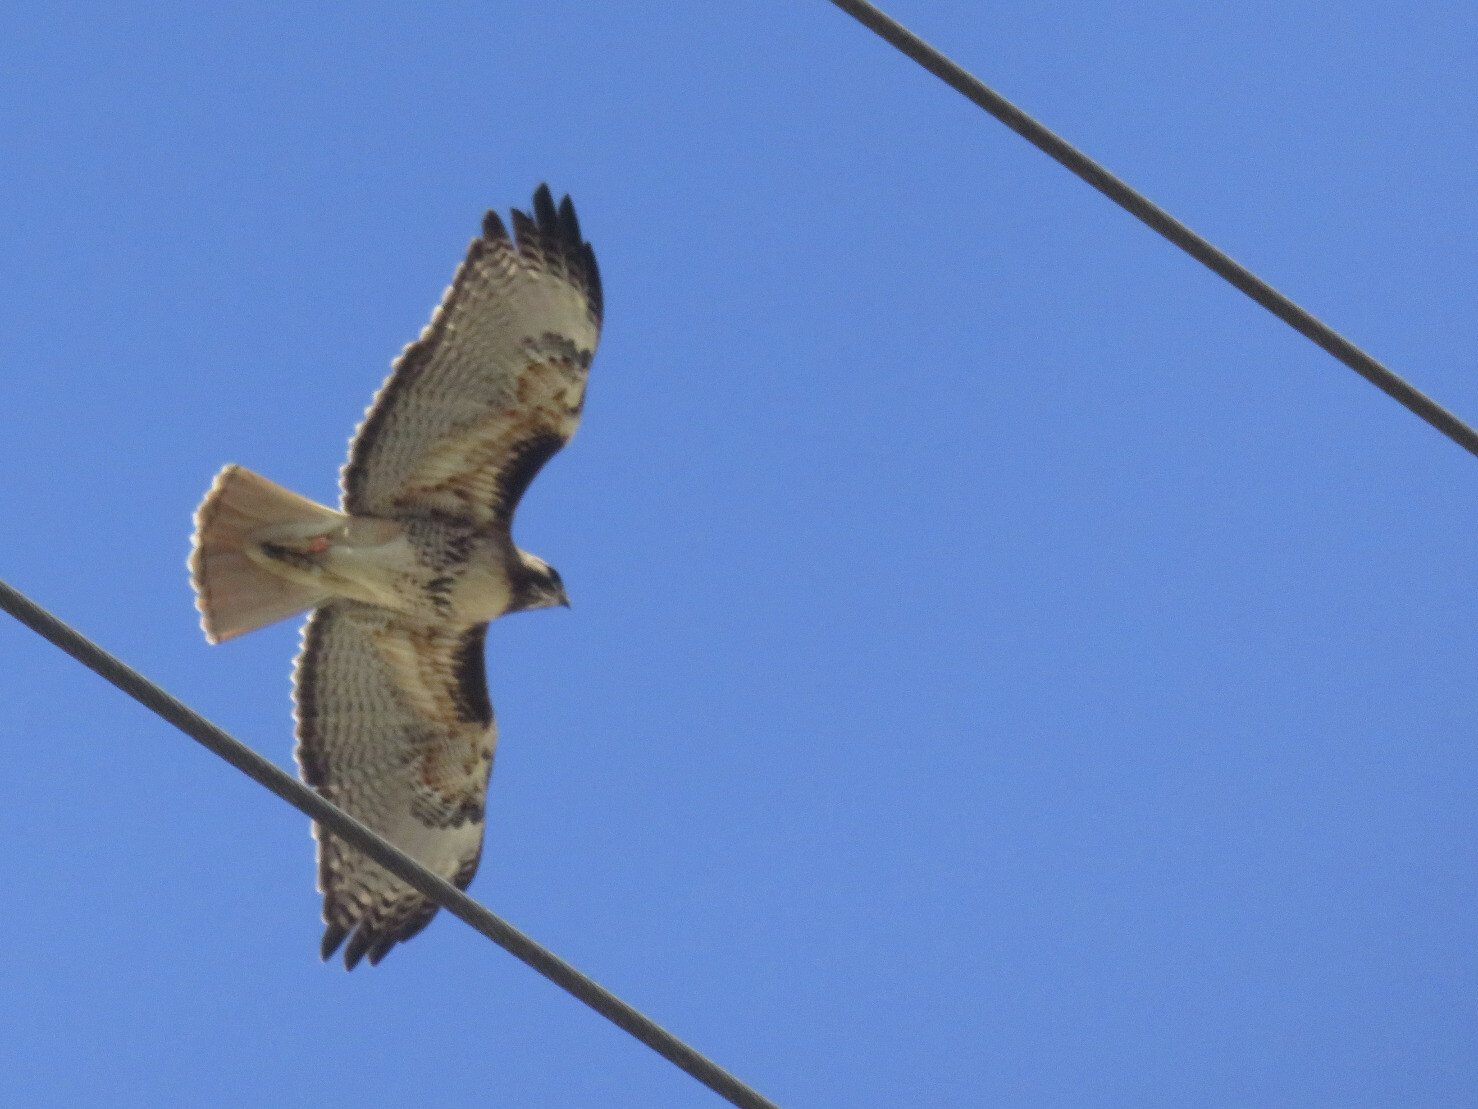 A red-tailed hawk spotted along the bike path today. It flew up to an electrical ...